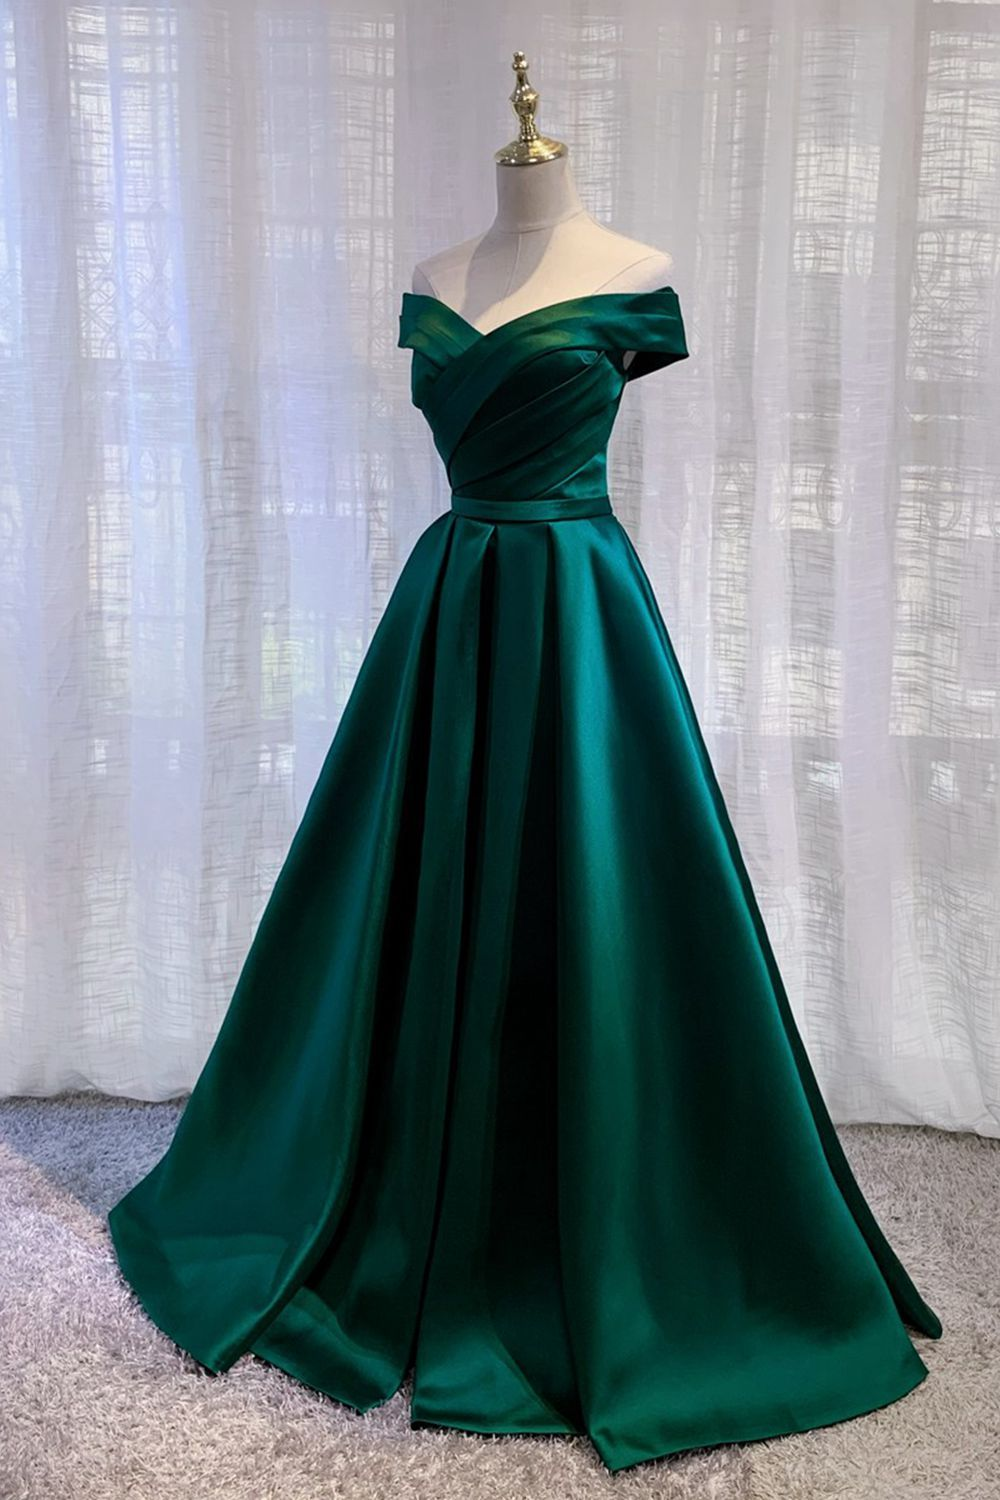 Imported Satin Emerald Green Prom Dresses 2021 Pleated A Line Off Shoulder Vestido Lace Up Back Formal Evening Gowns From Cherishwedding Emerald Green Prom Dress Prom Dresses Dark Green Prom Dresses [ 1500 x 1000 Pixel ]